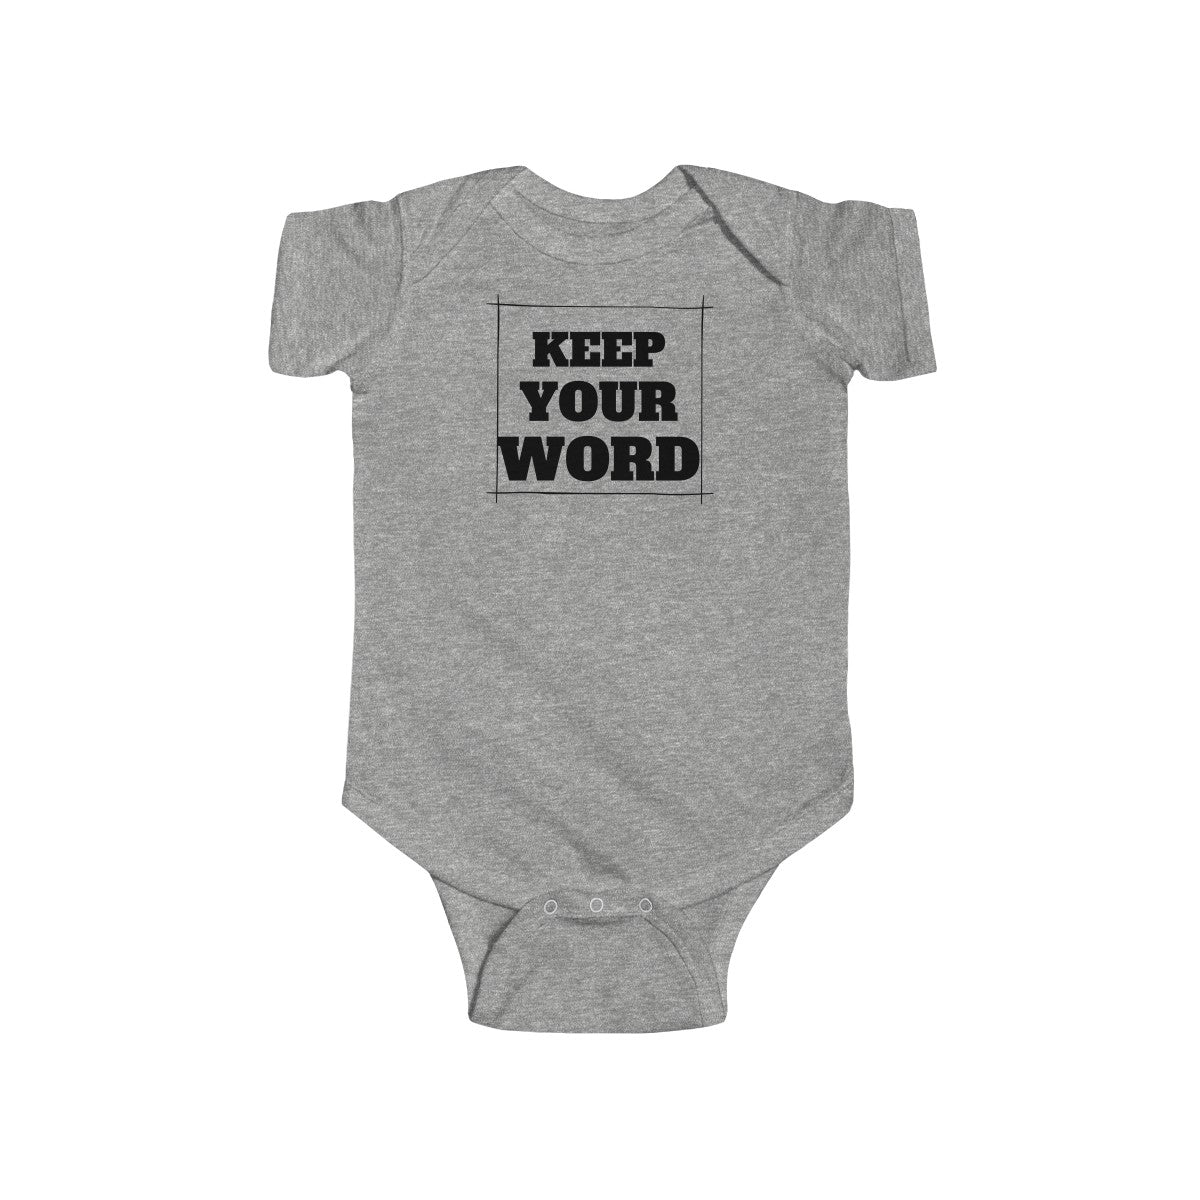 Keep your word - Infant Fine Jersey Bodysuit by Dray-A